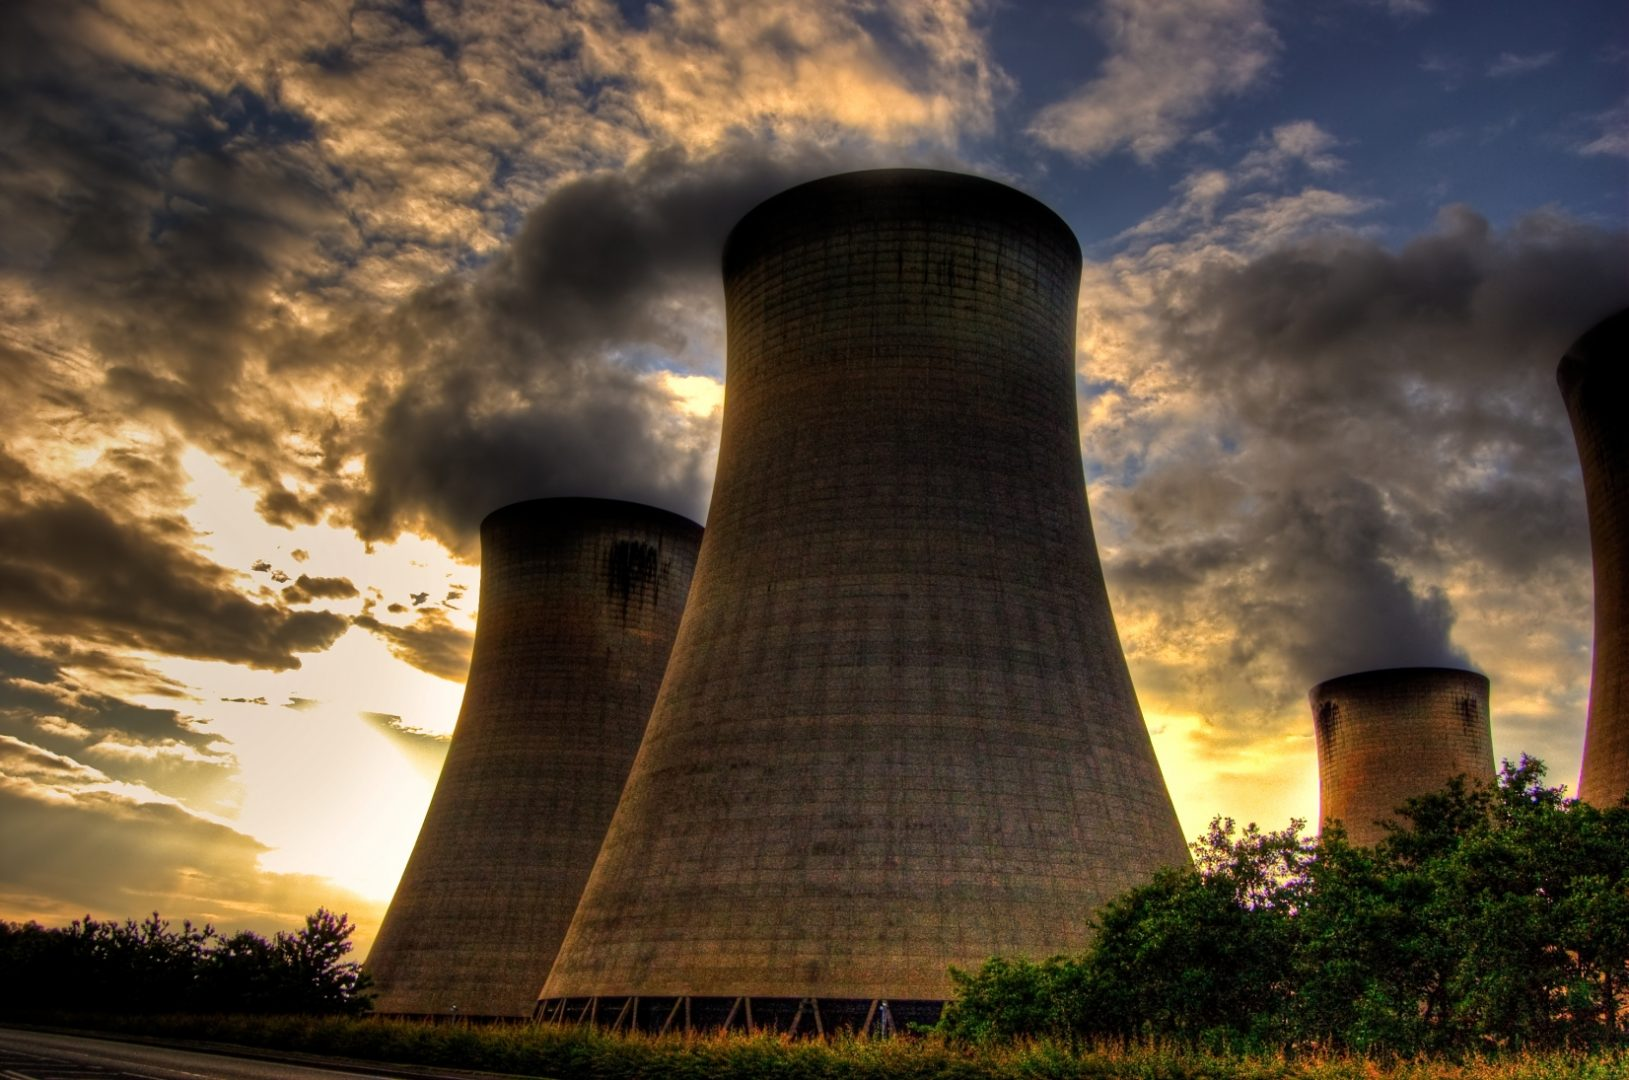 Coal Power Plant. Photo: Belt and Road News